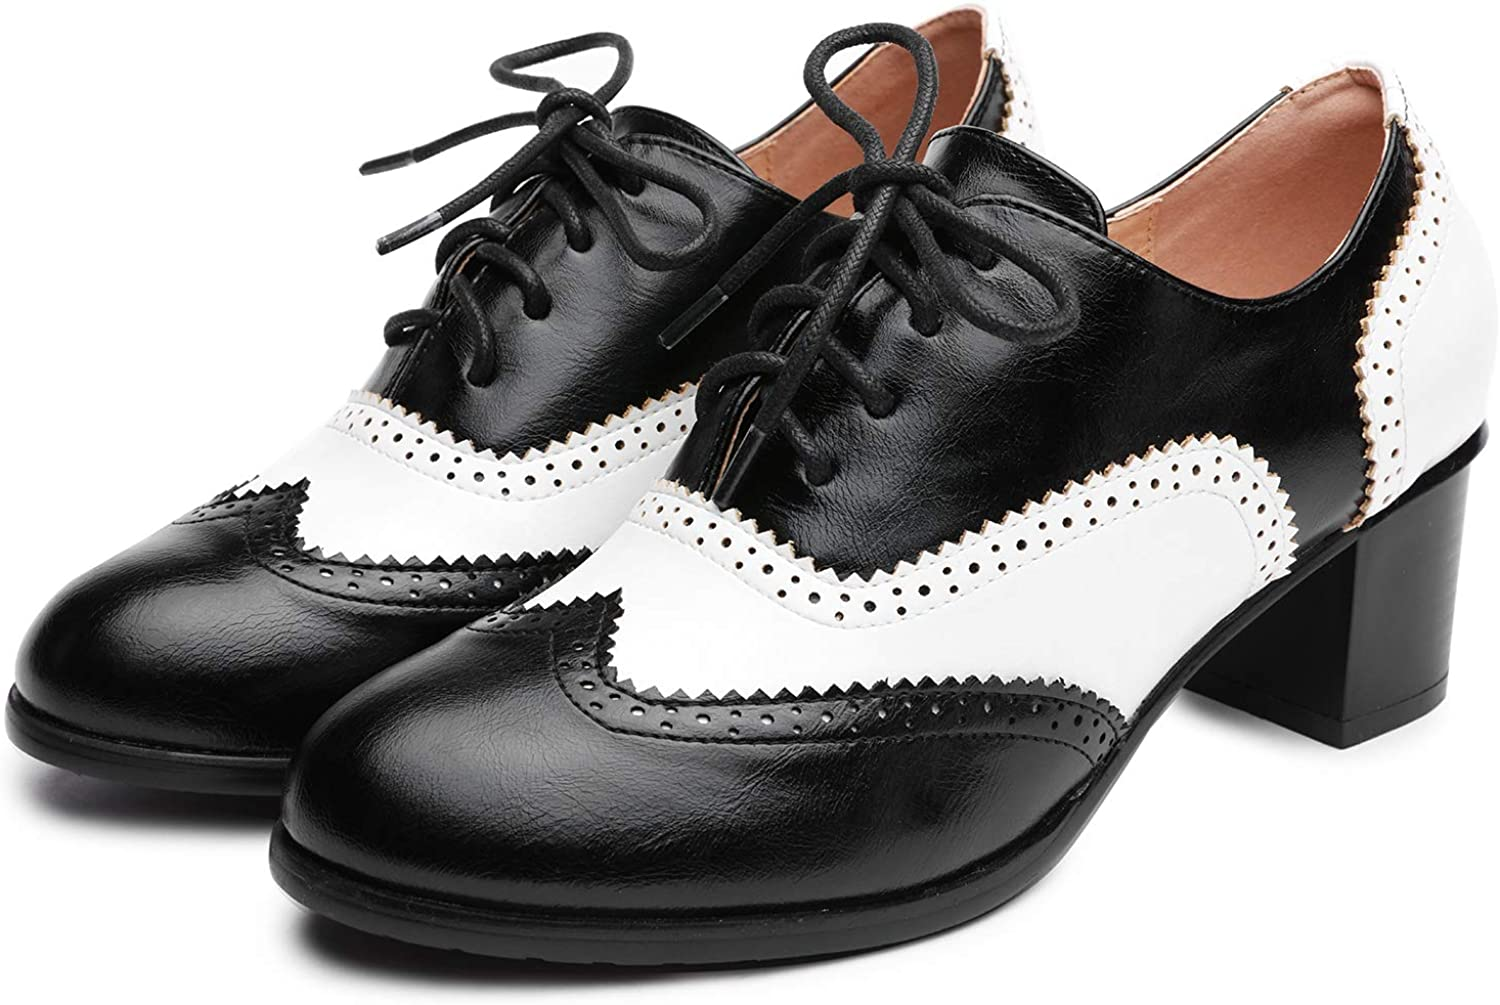 1940s Style Shoes, 40s Shoes, Heels, Boots Odema Womens PU Leather Oxfords Wingtip Lace up Mid Heel Pumps Shoes … $29.99 AT vintagedancer.com